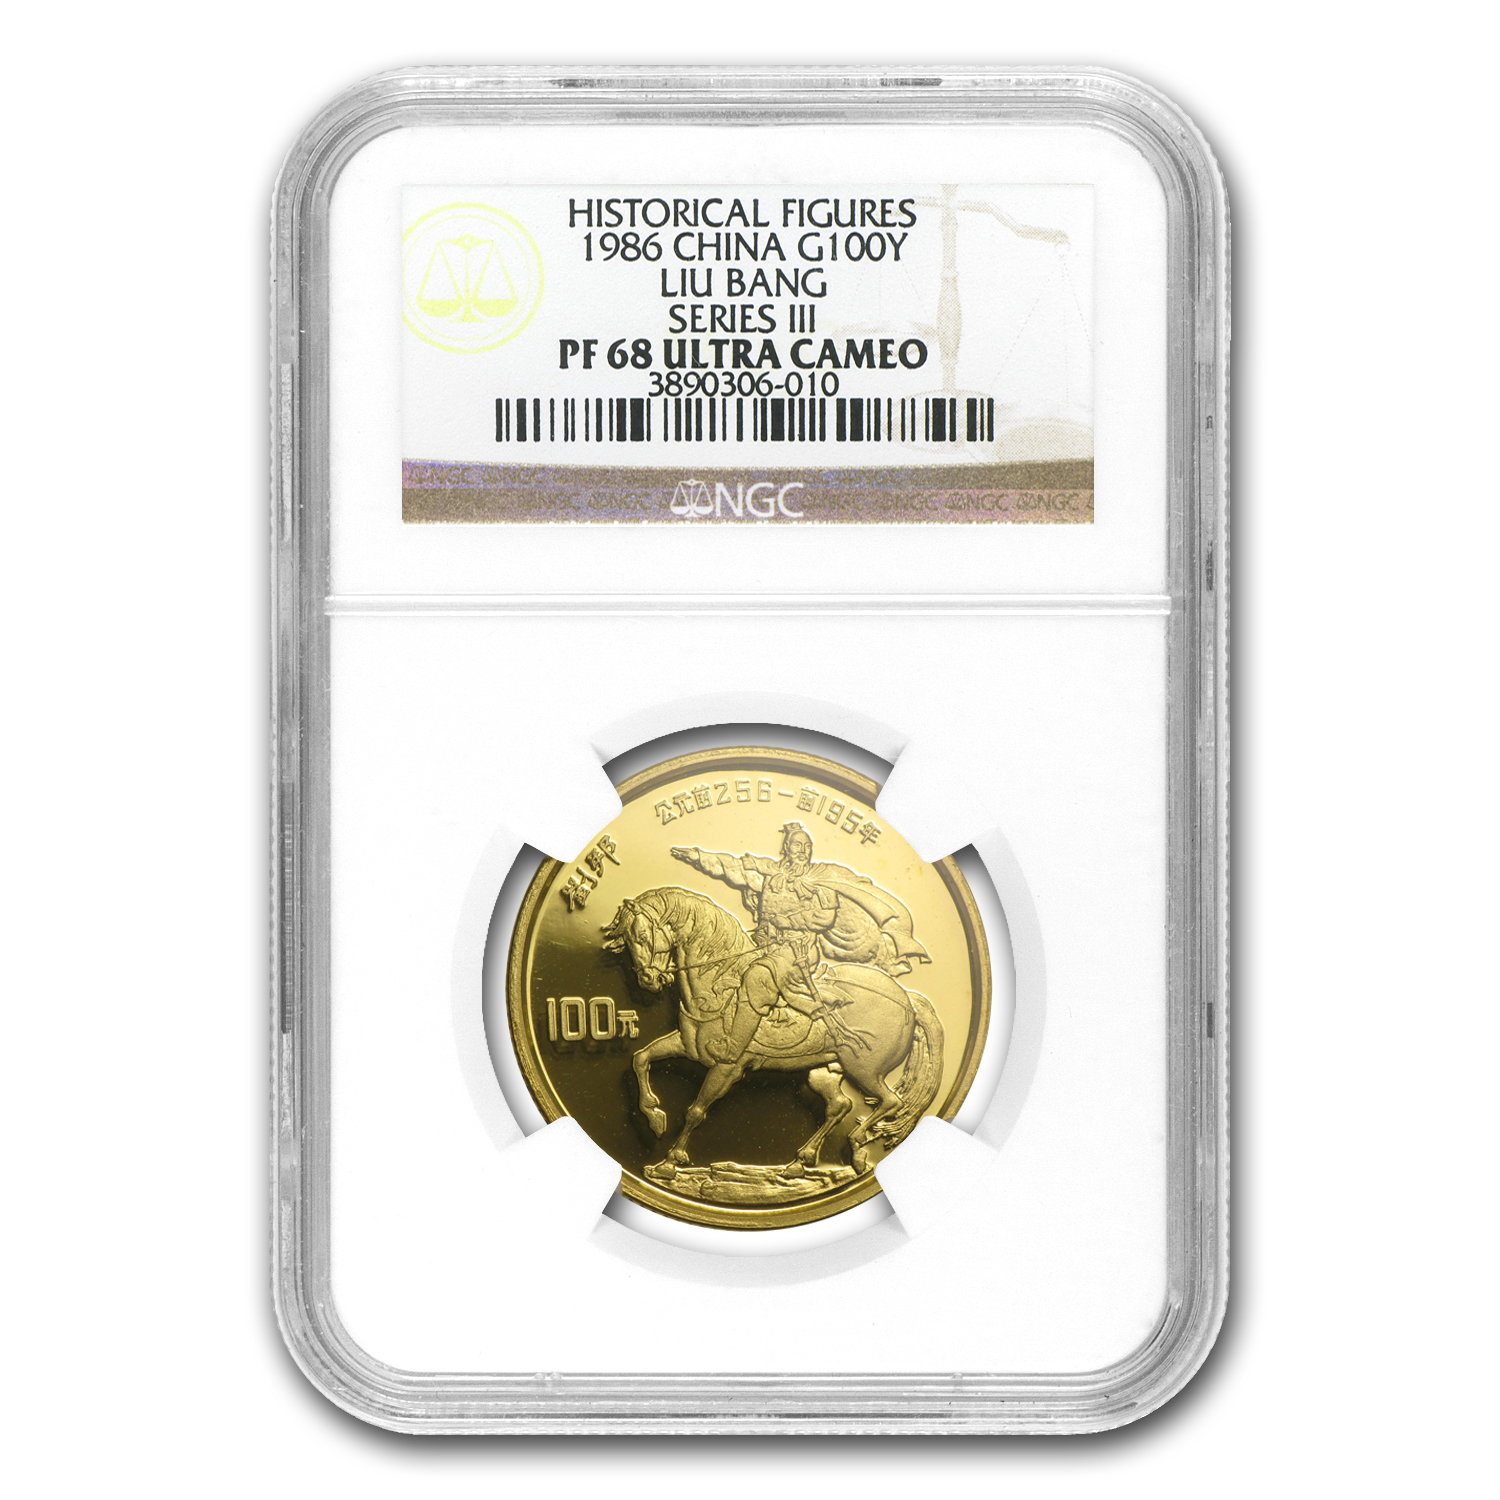 China 1986 1/3 oz Gold Historical Figures Liu Bang PF-68 NGC